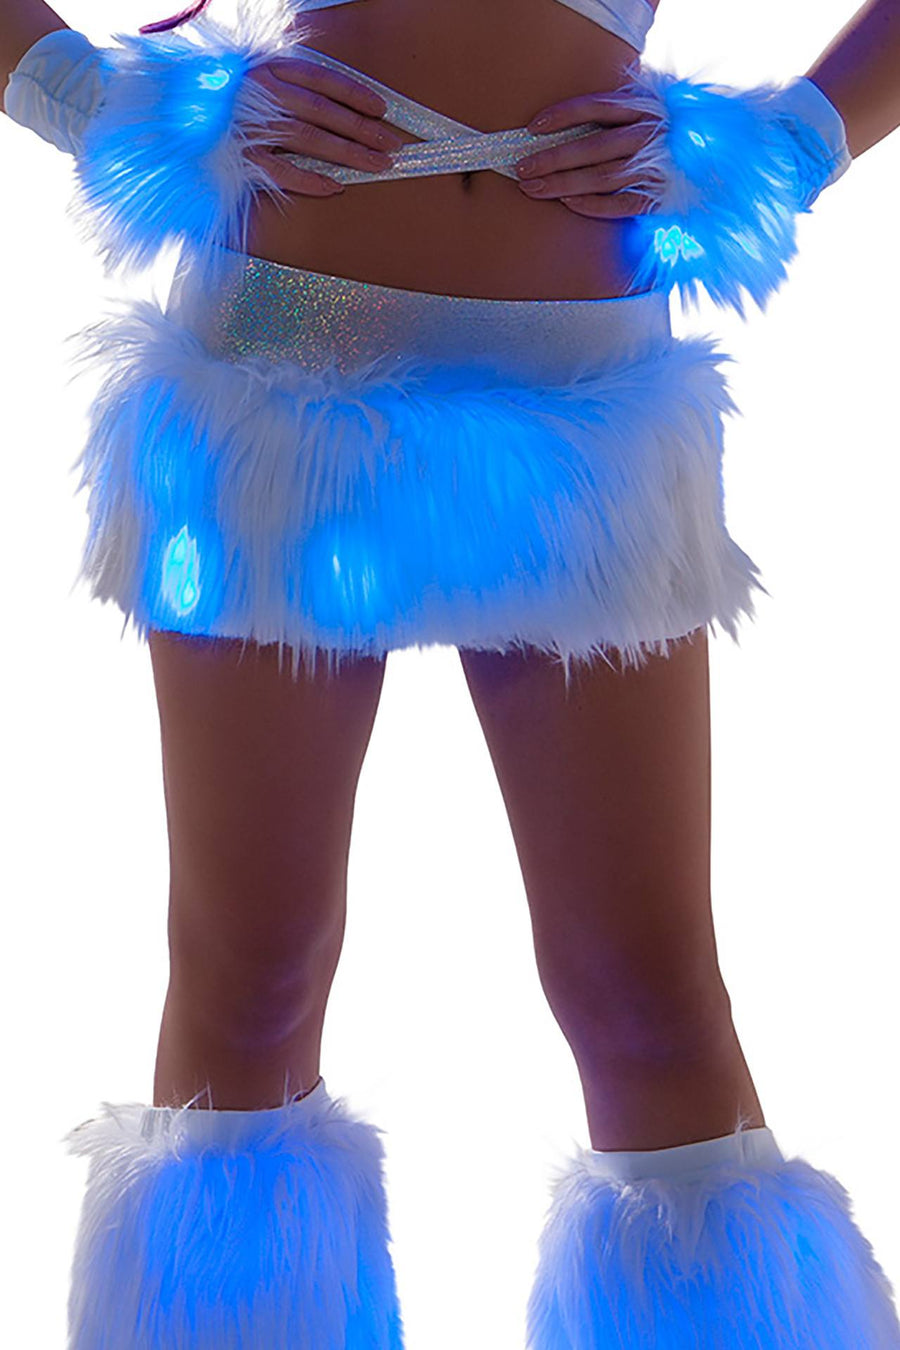 J-Valentine Light-up skirt with LED lights - J Valentine, Light-Up Cropped - YourLamode - 1